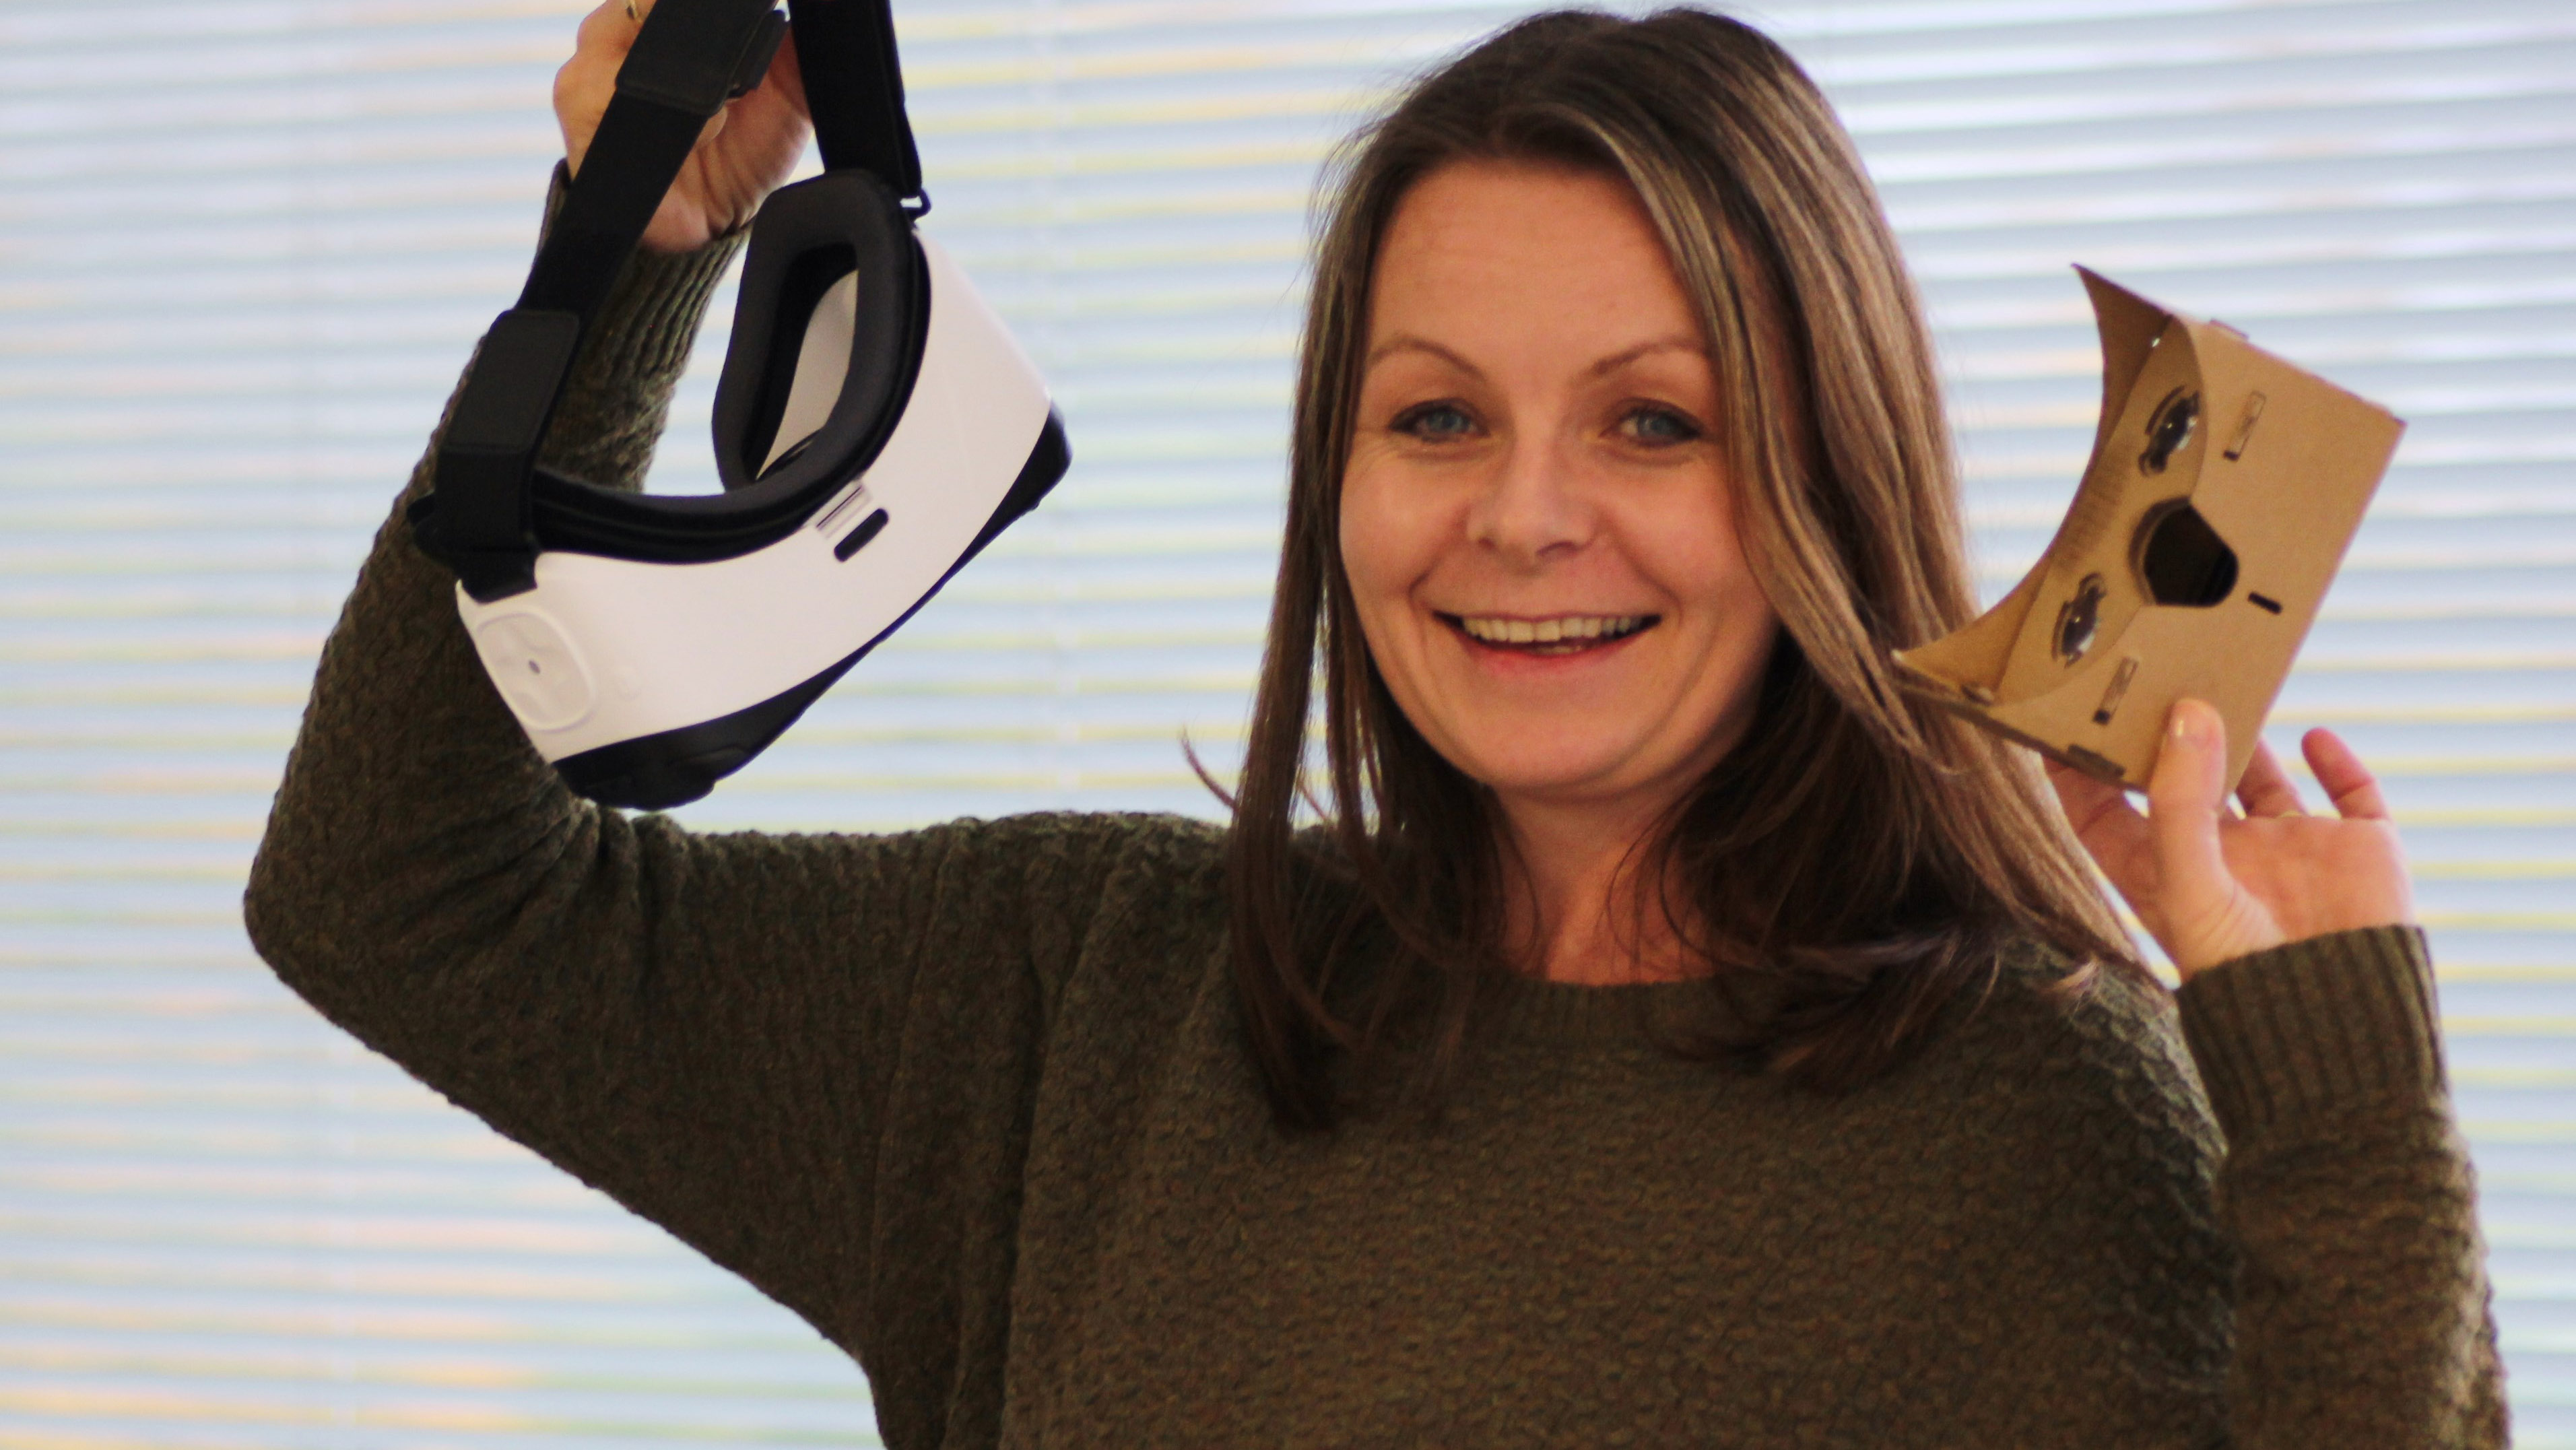 Ingveig Aronsen holder to typer av VR-briller